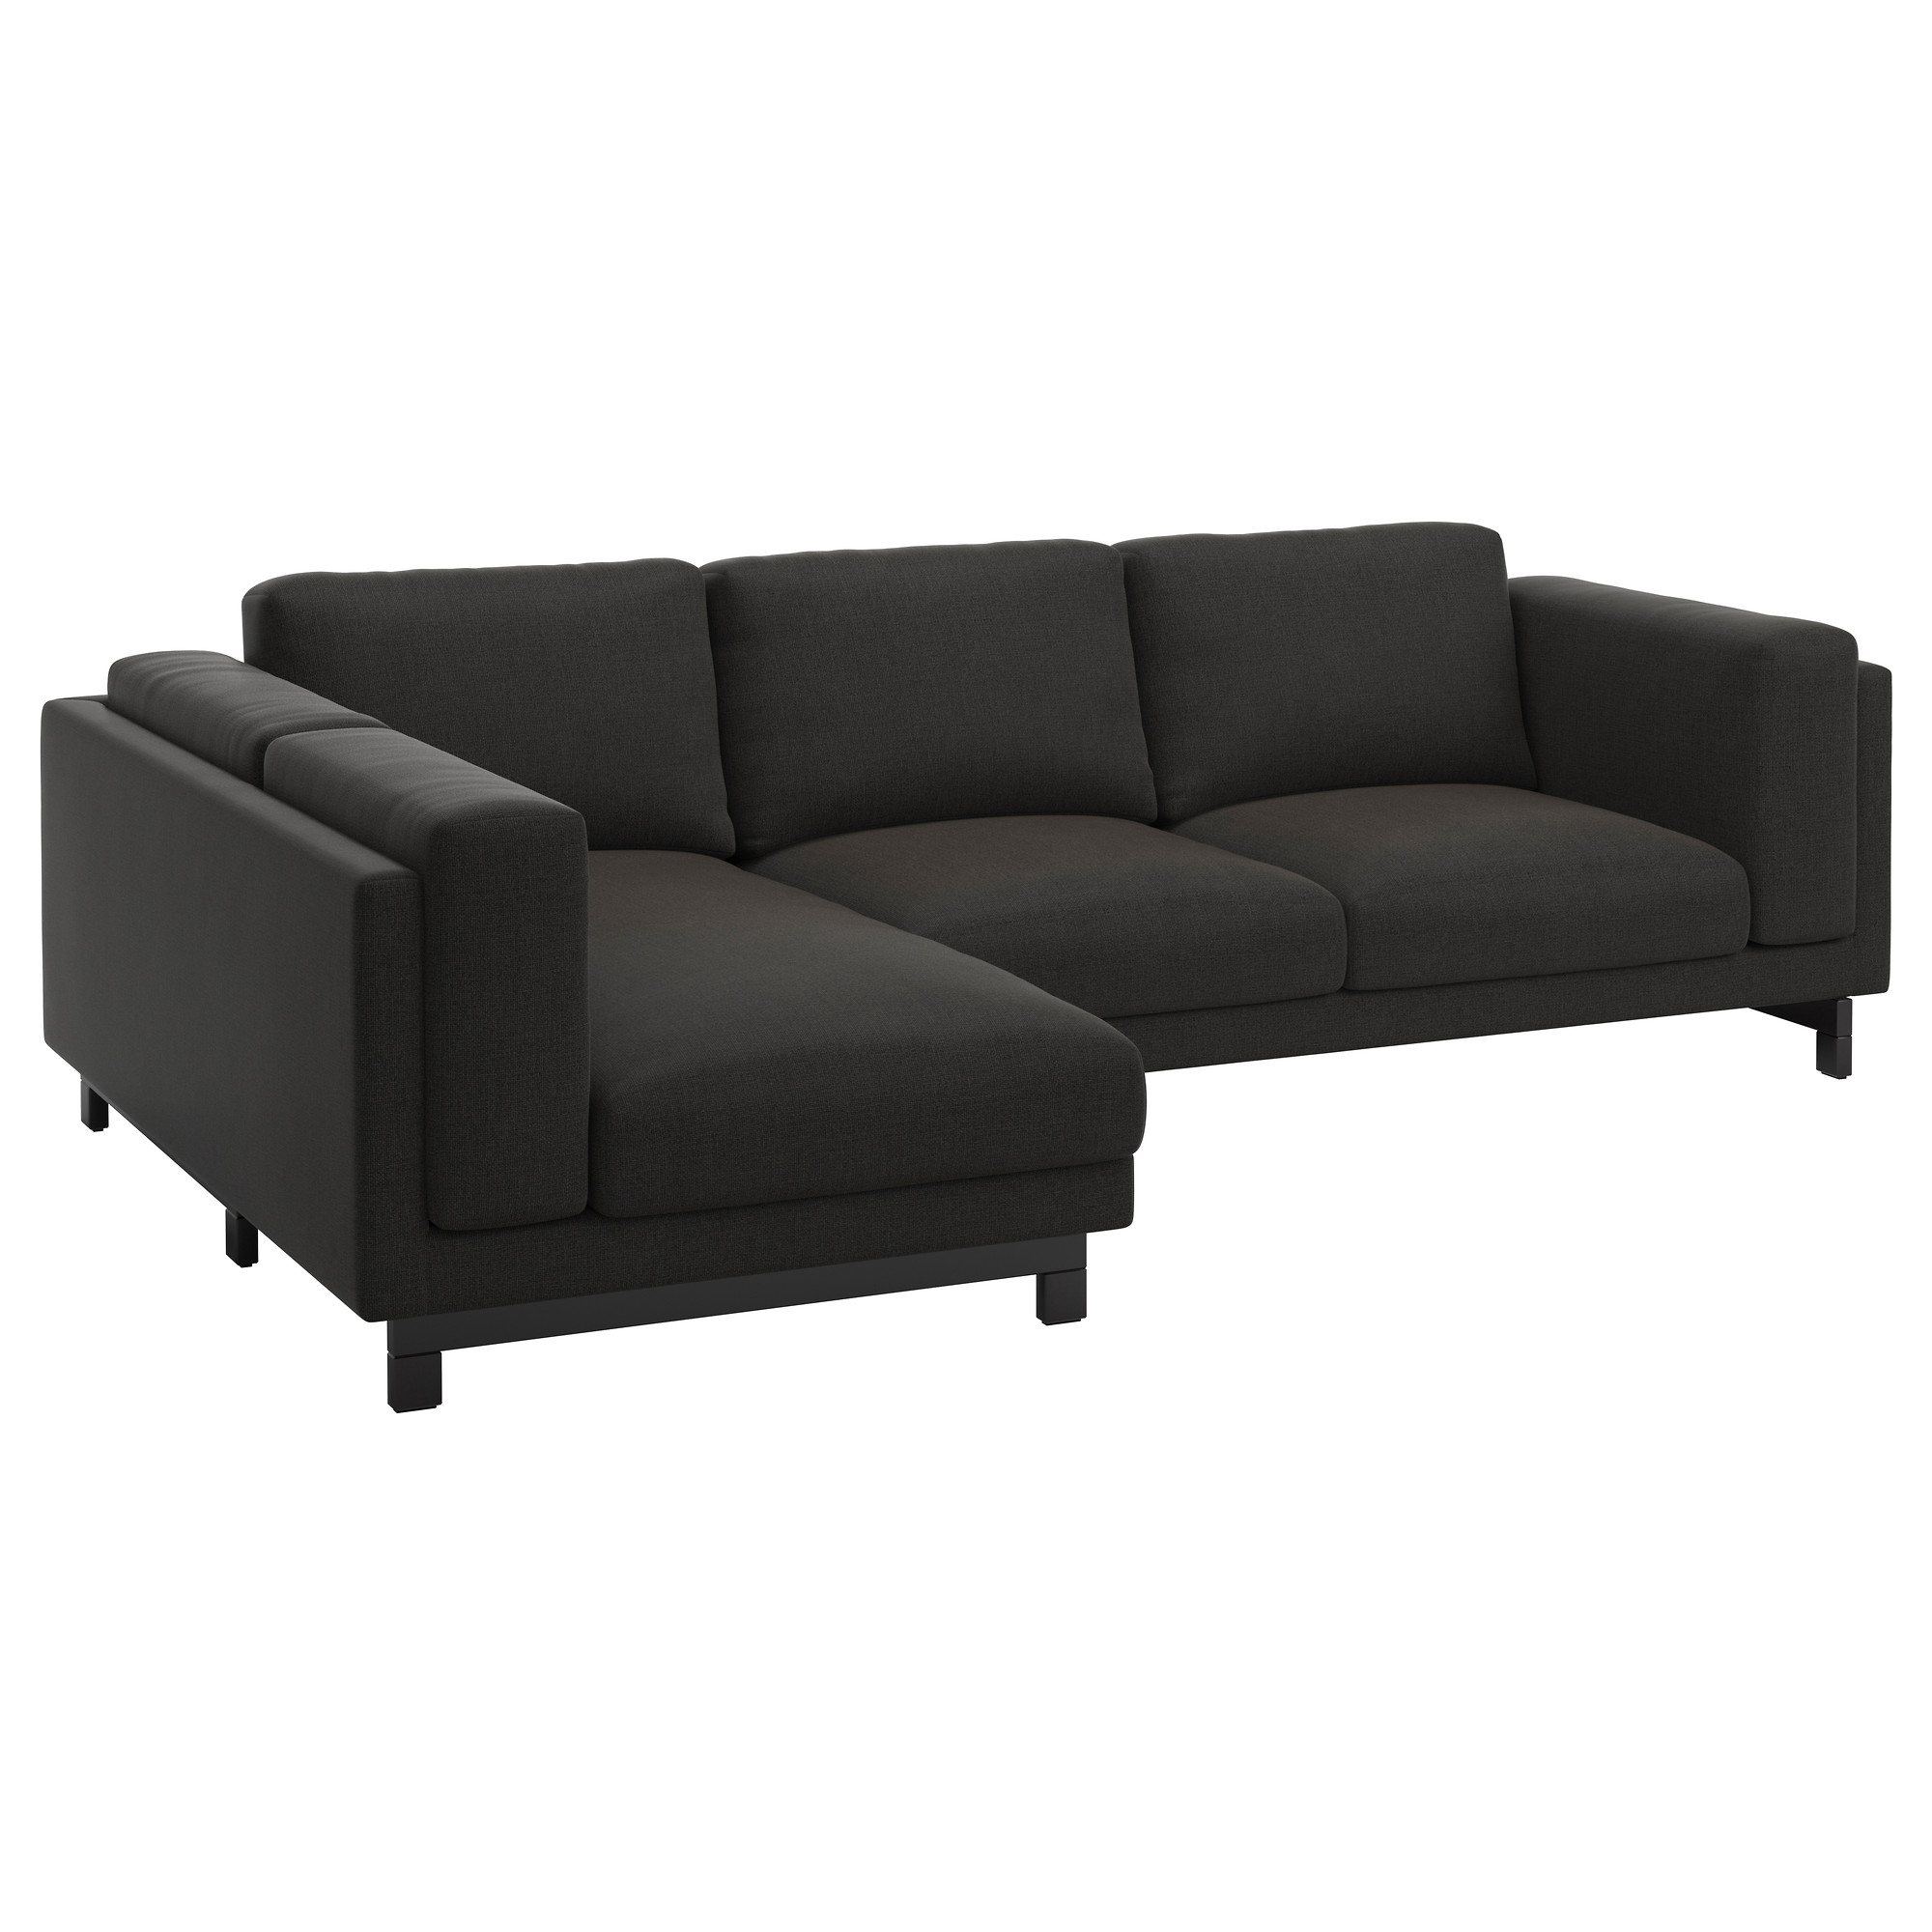 Sofa Relax Ikea Whdr Ikea Small Sectional Sectional Couches Small Sectional Couch Relax